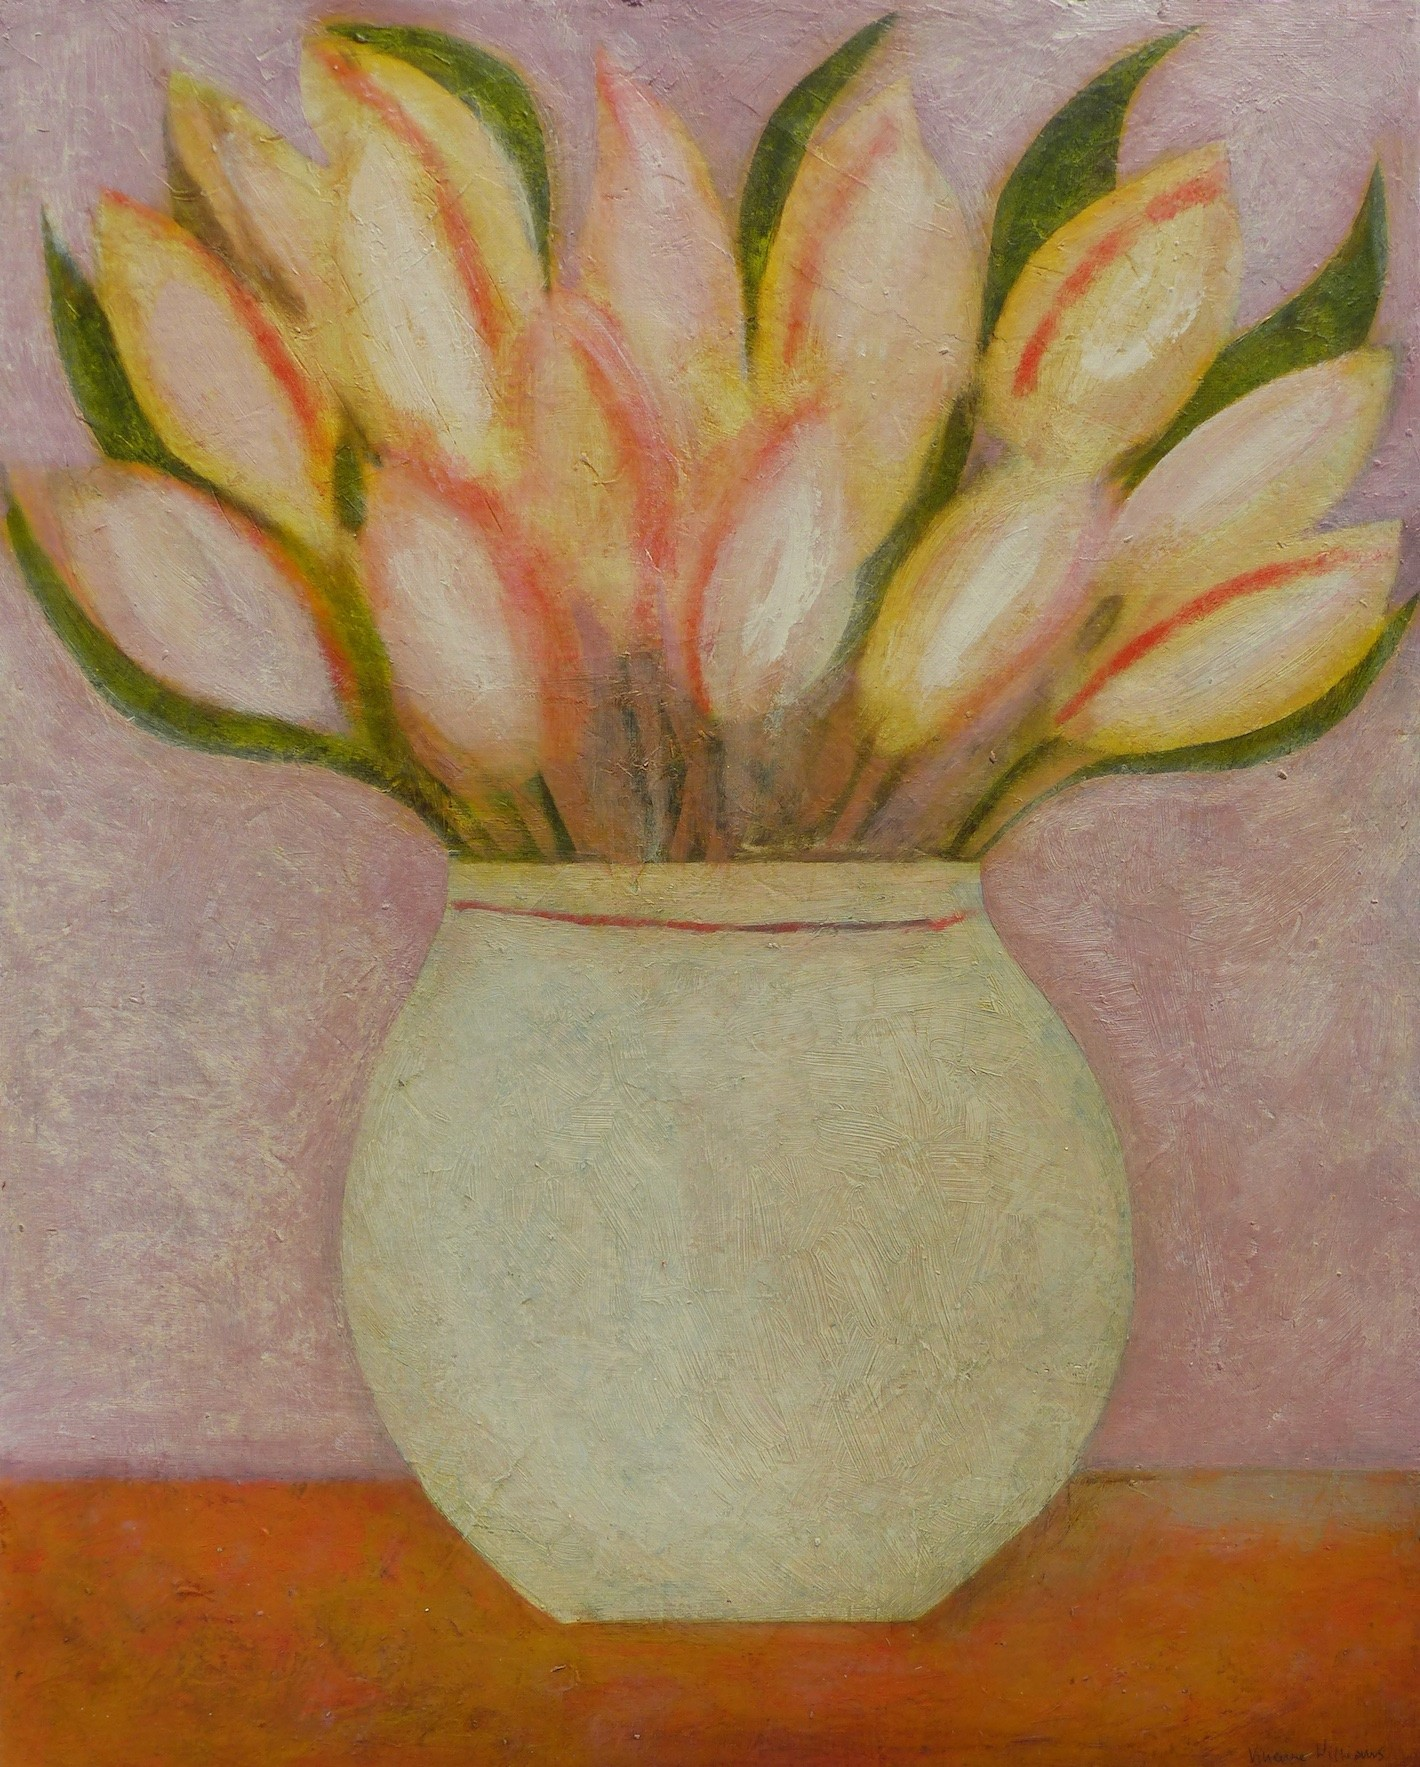 Vivienne Williams 'Spring Tulips' Acrylic on Paper (51 X 41 cm)